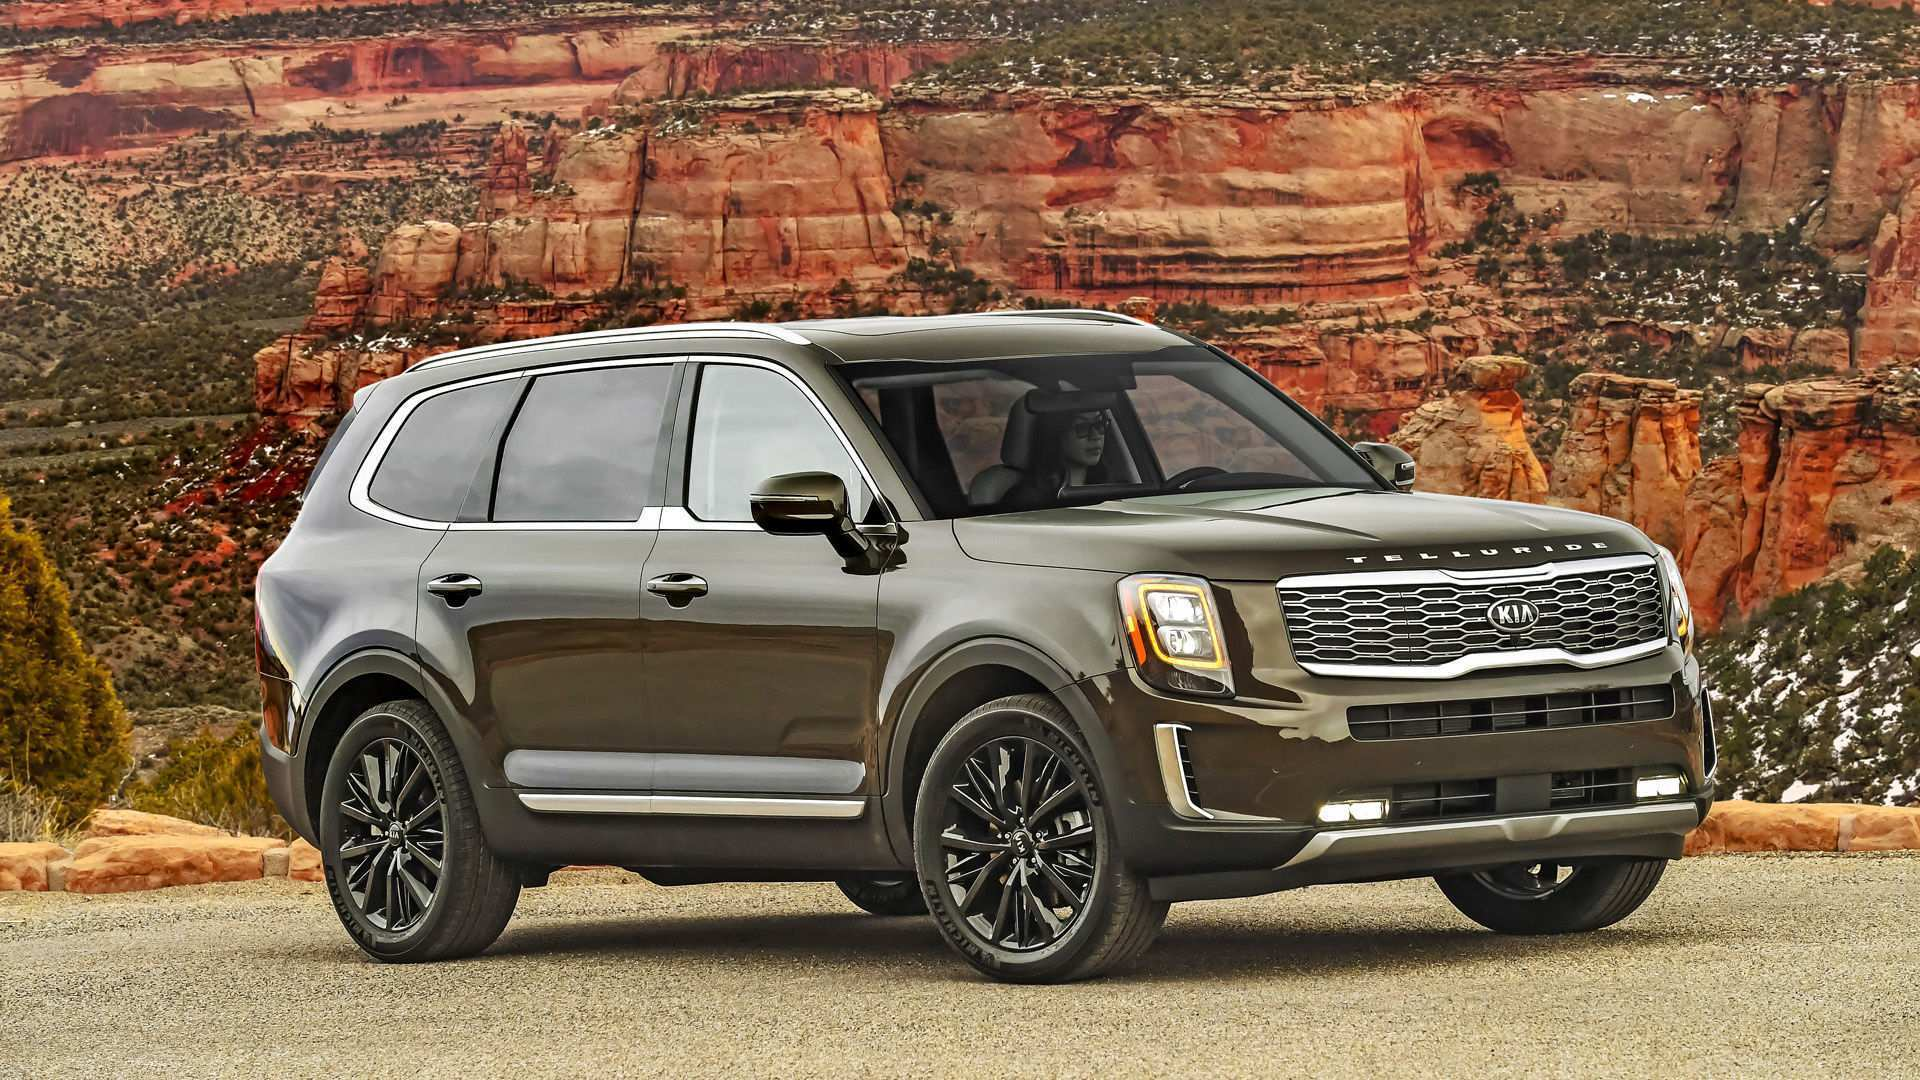 16 Best 2020 Kia Telluride Price In Uae Ratings